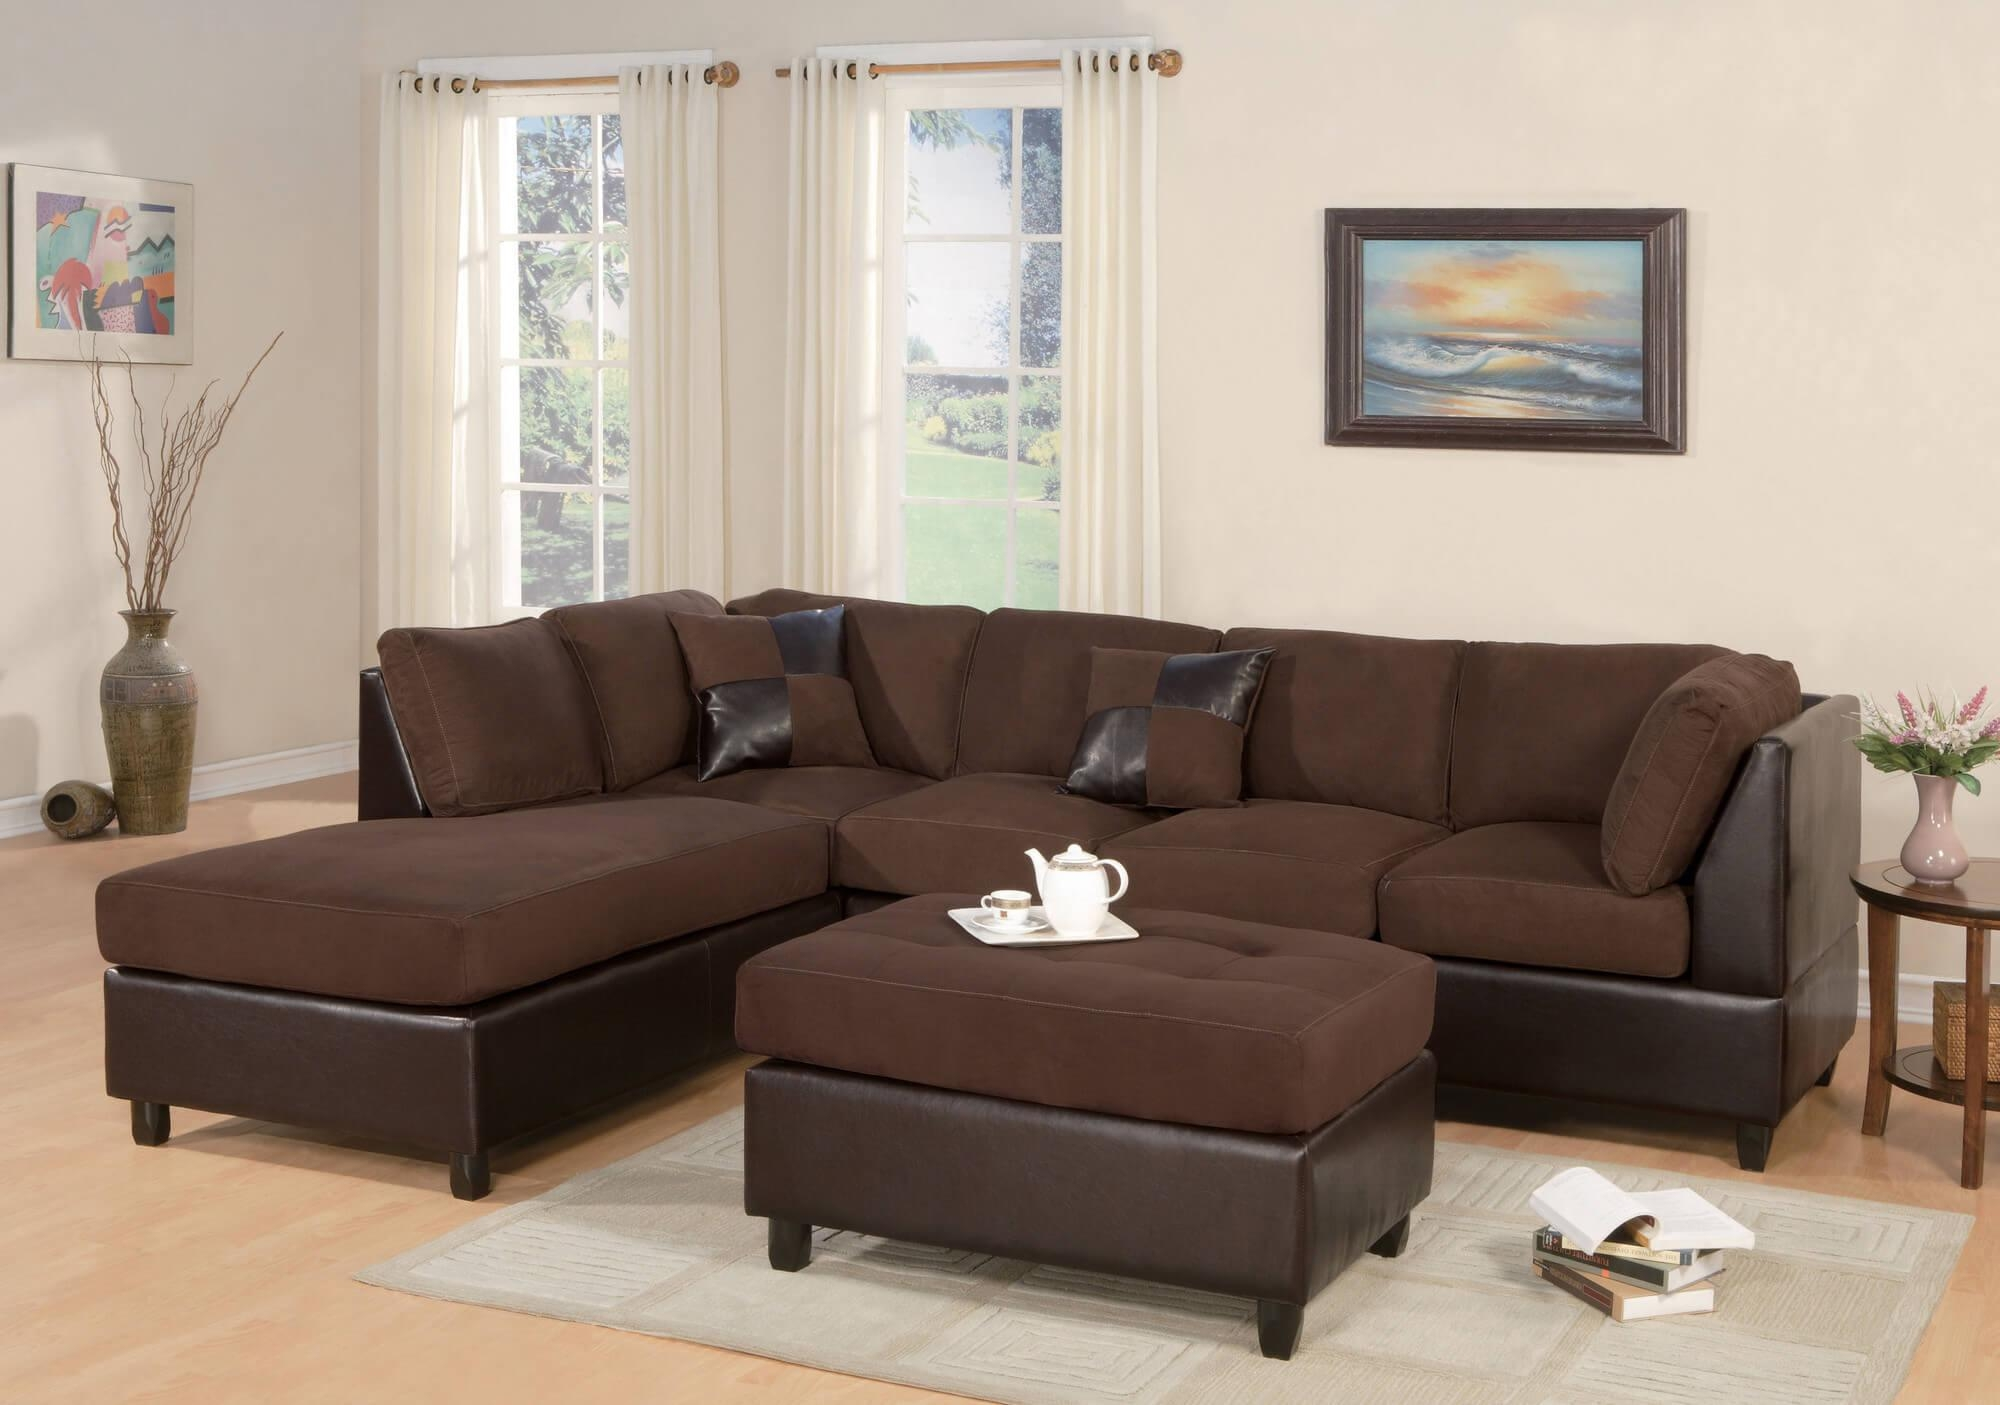 Sofas Center : Glamorous Sectional Sofas Big Lots For Rooms To Inside Big Lots Couches (Image 16 of 20)